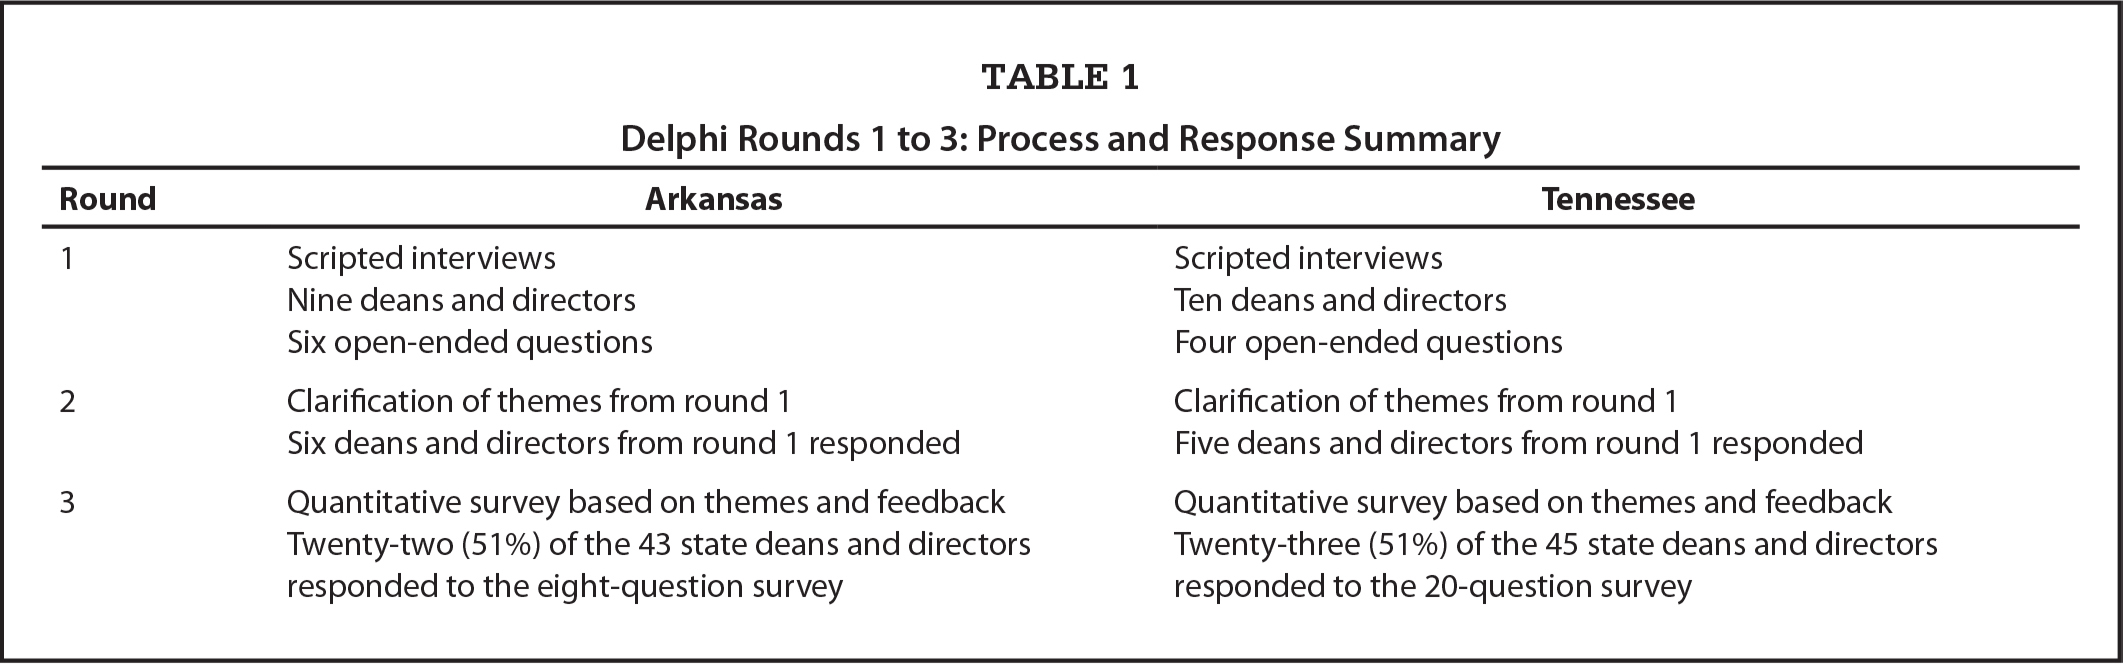 Delphi Rounds 1 to 3: Process and Response Summary